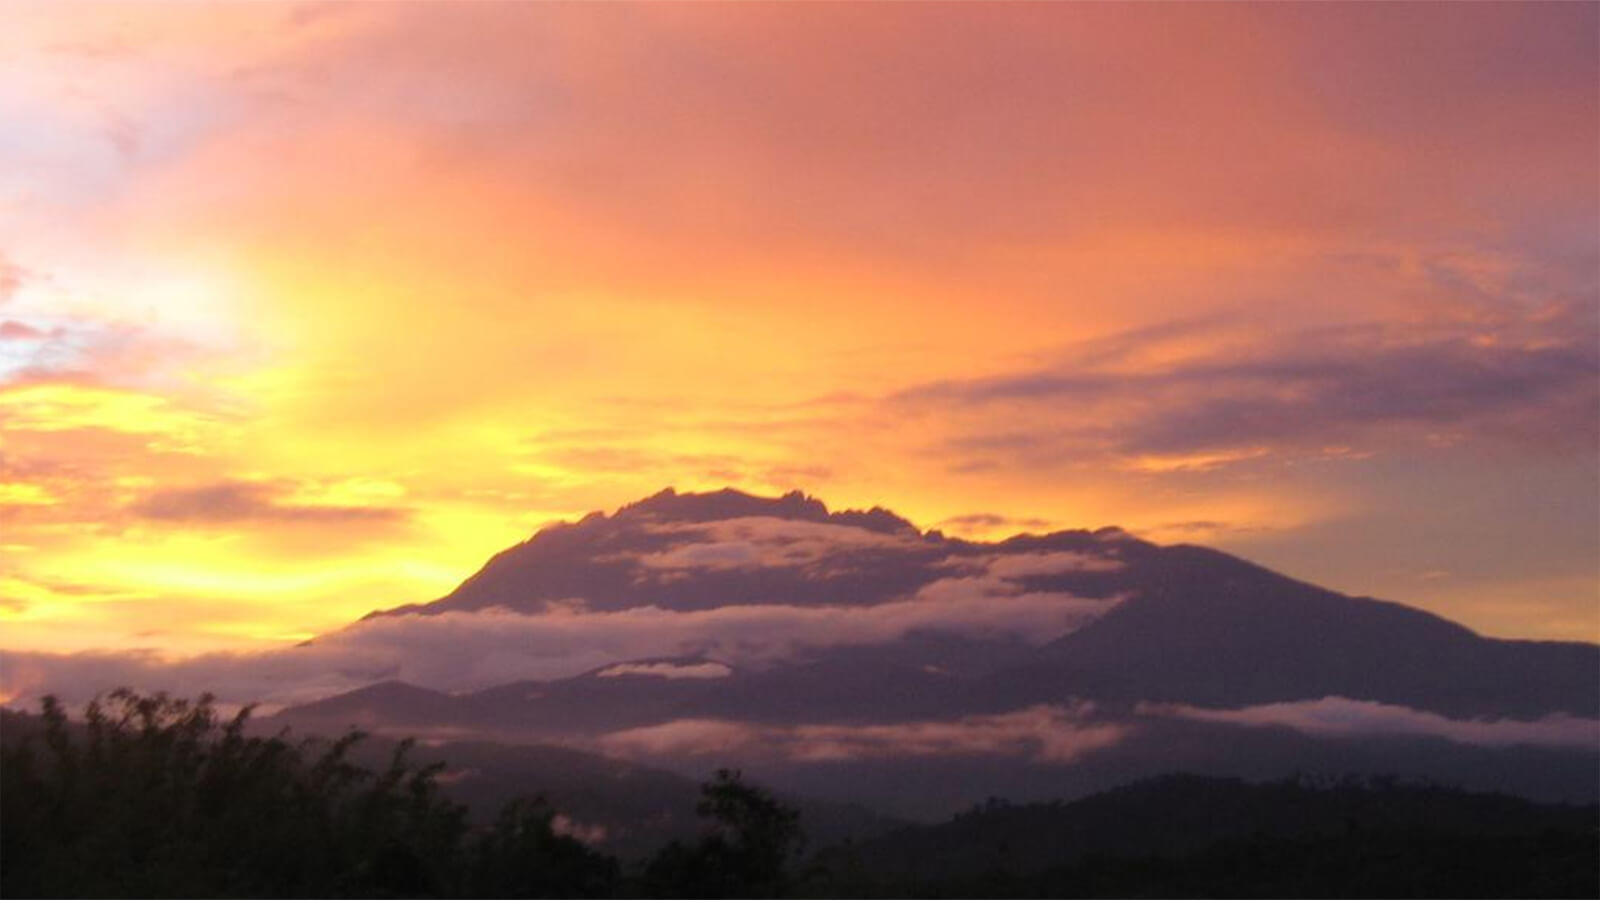 The Sabah Tea Resort is one of the top places to view the sunset in Sabah